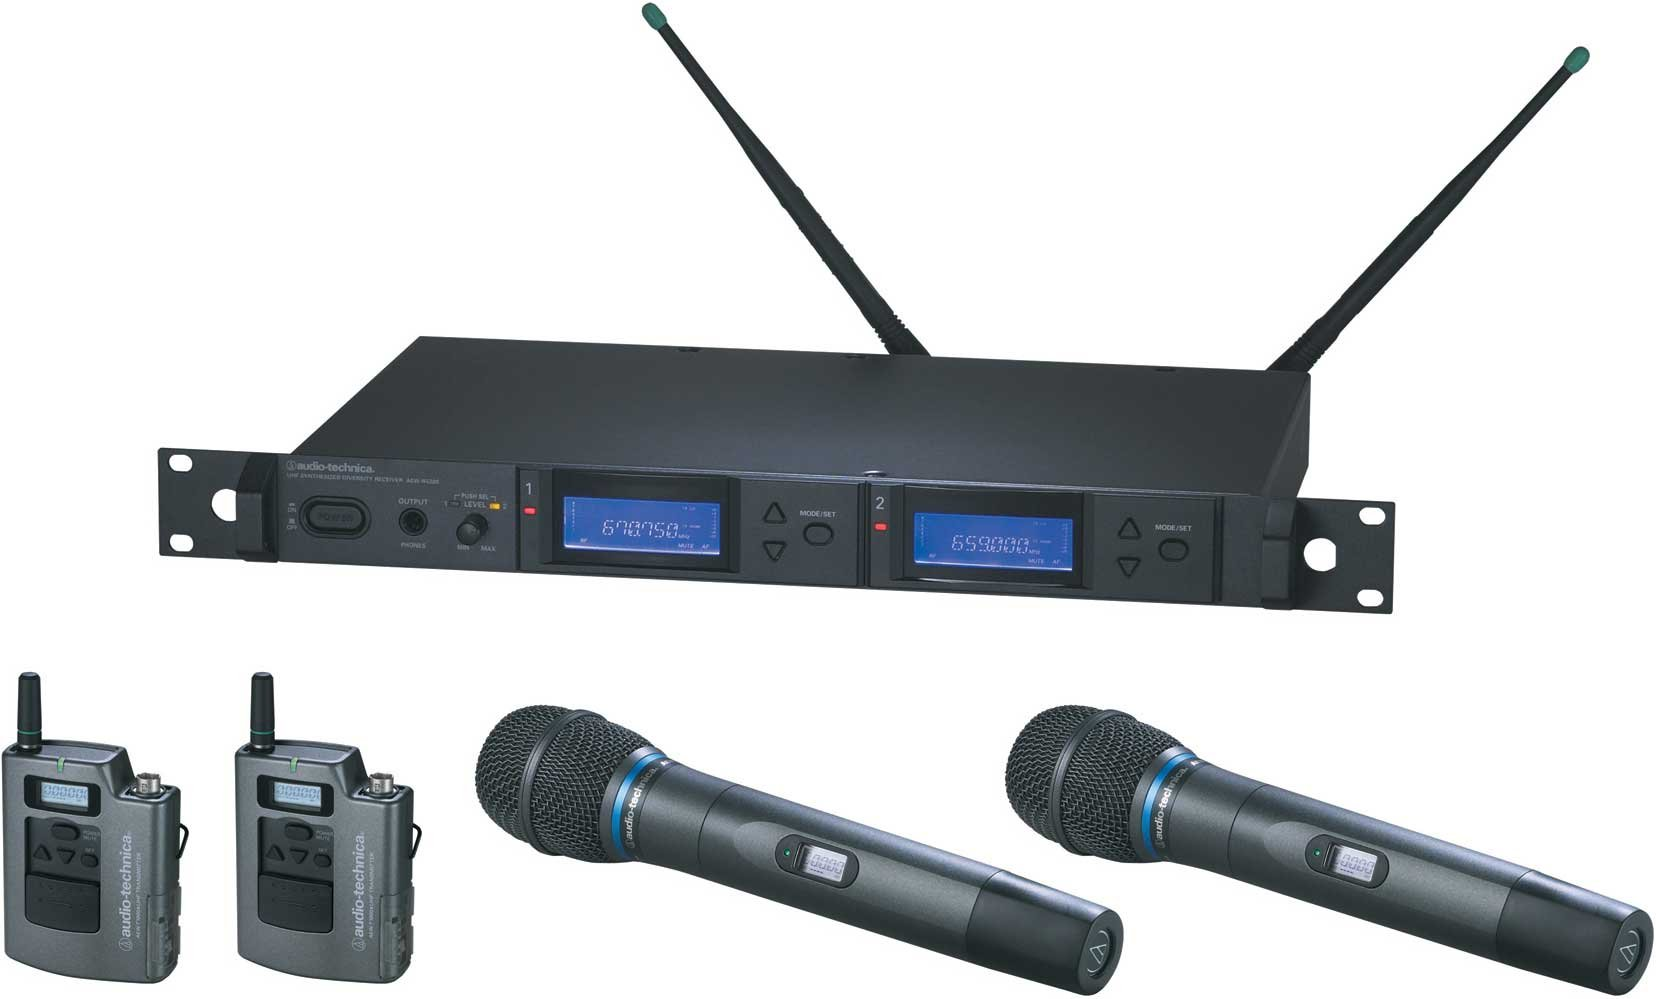 Wireless Mic Microphone System with 2 x Bodypack Transmitters & 2 x AEW-T3300a Cardioid Condenser Mic/Transmitter, UHF Band C: 541.500 MHz to 566.375 MHz